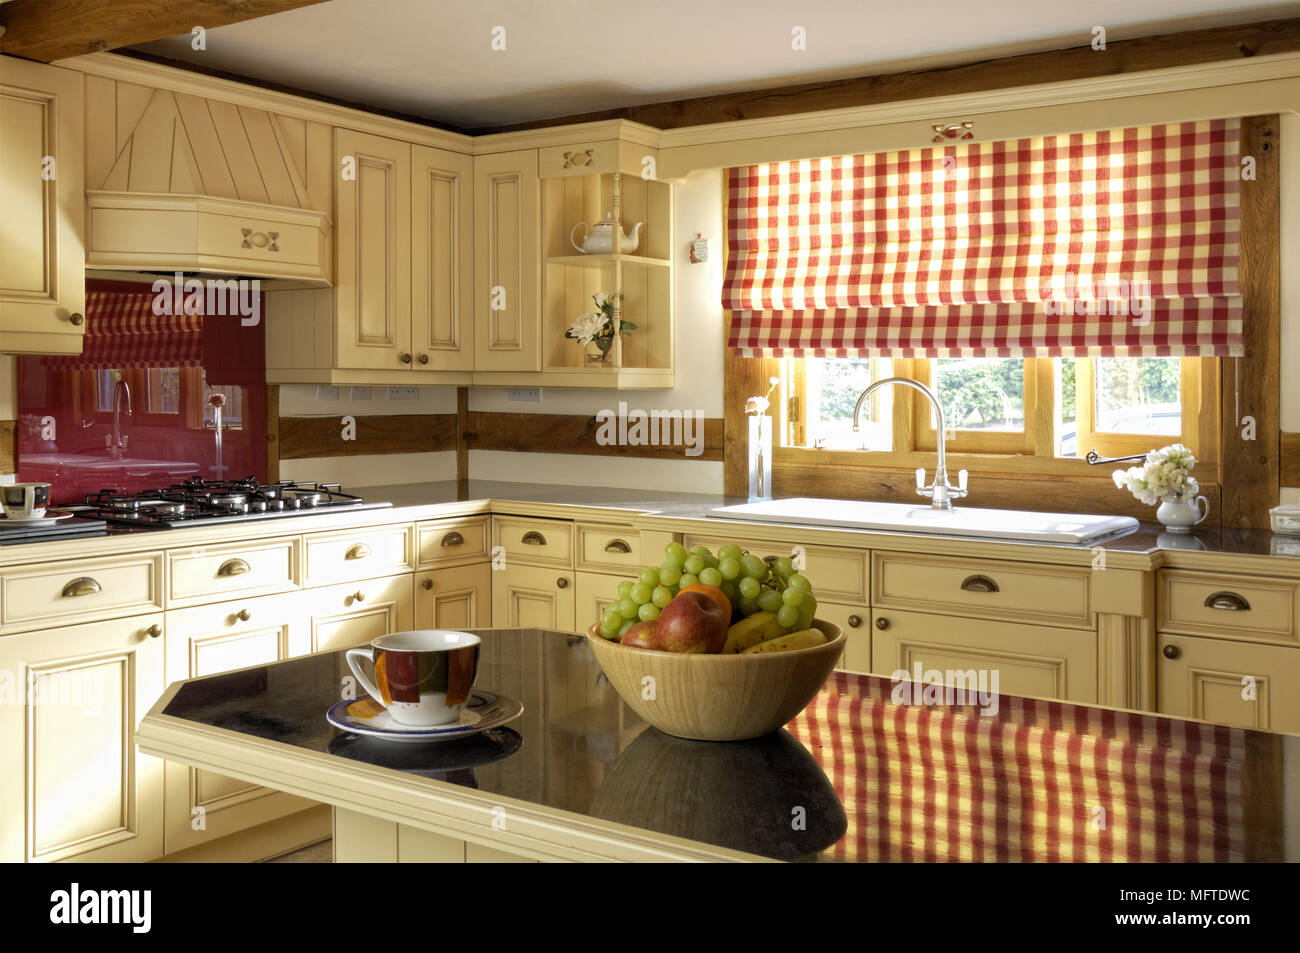 Modern Country Style Kitchen With Red Check Patterned Roman Blind At